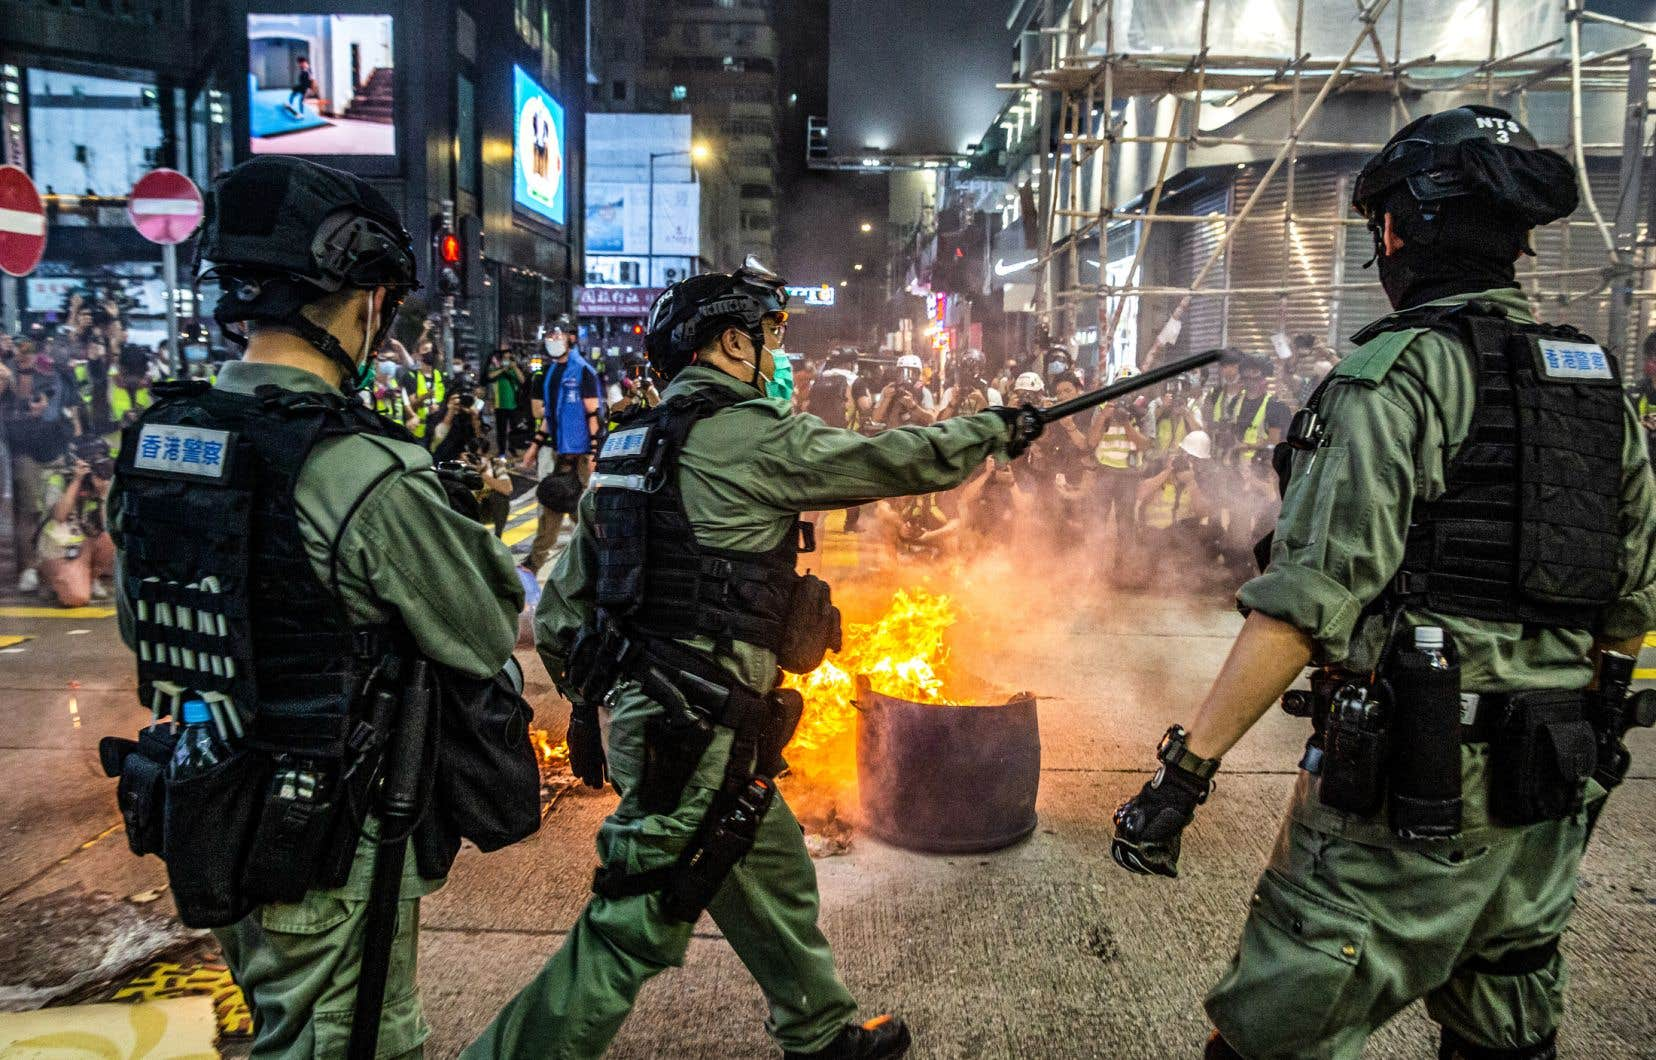 La police disperse des manifestants dans le district de Mong Kok à Hong Kong, le 27 mai 2020.